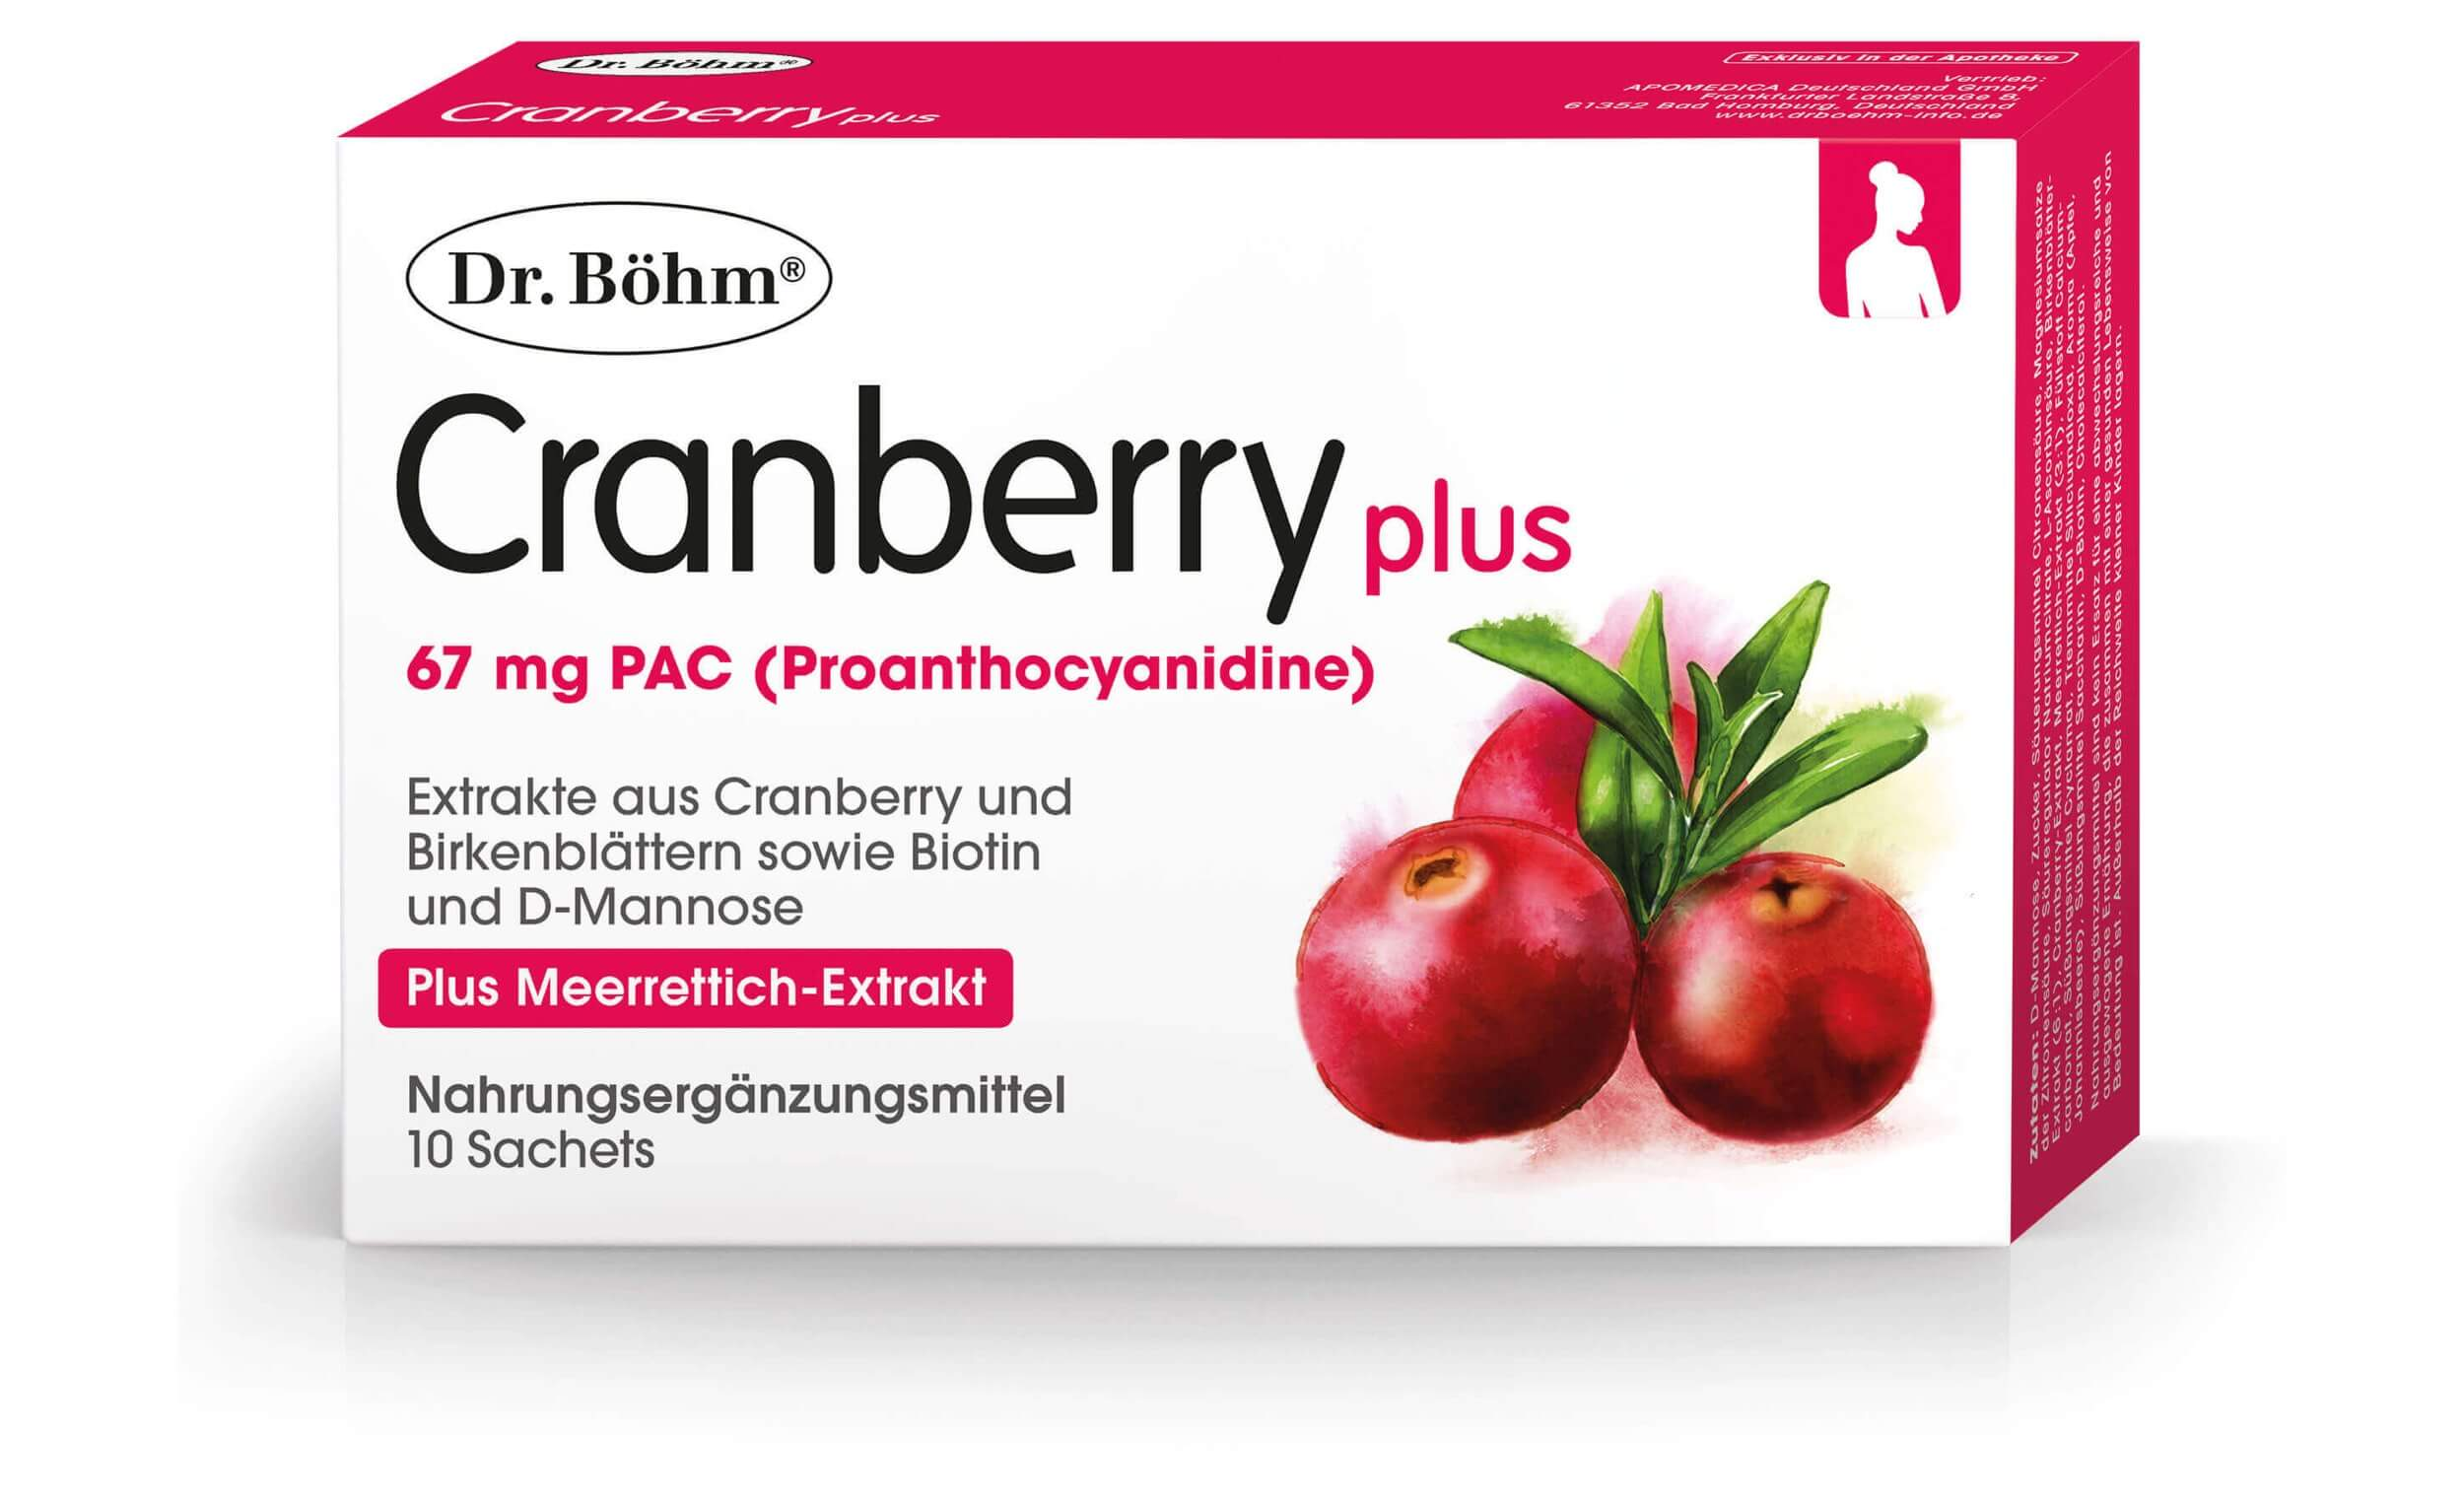 Faltschachtel_Cranberry-plus_DE_2019_4c